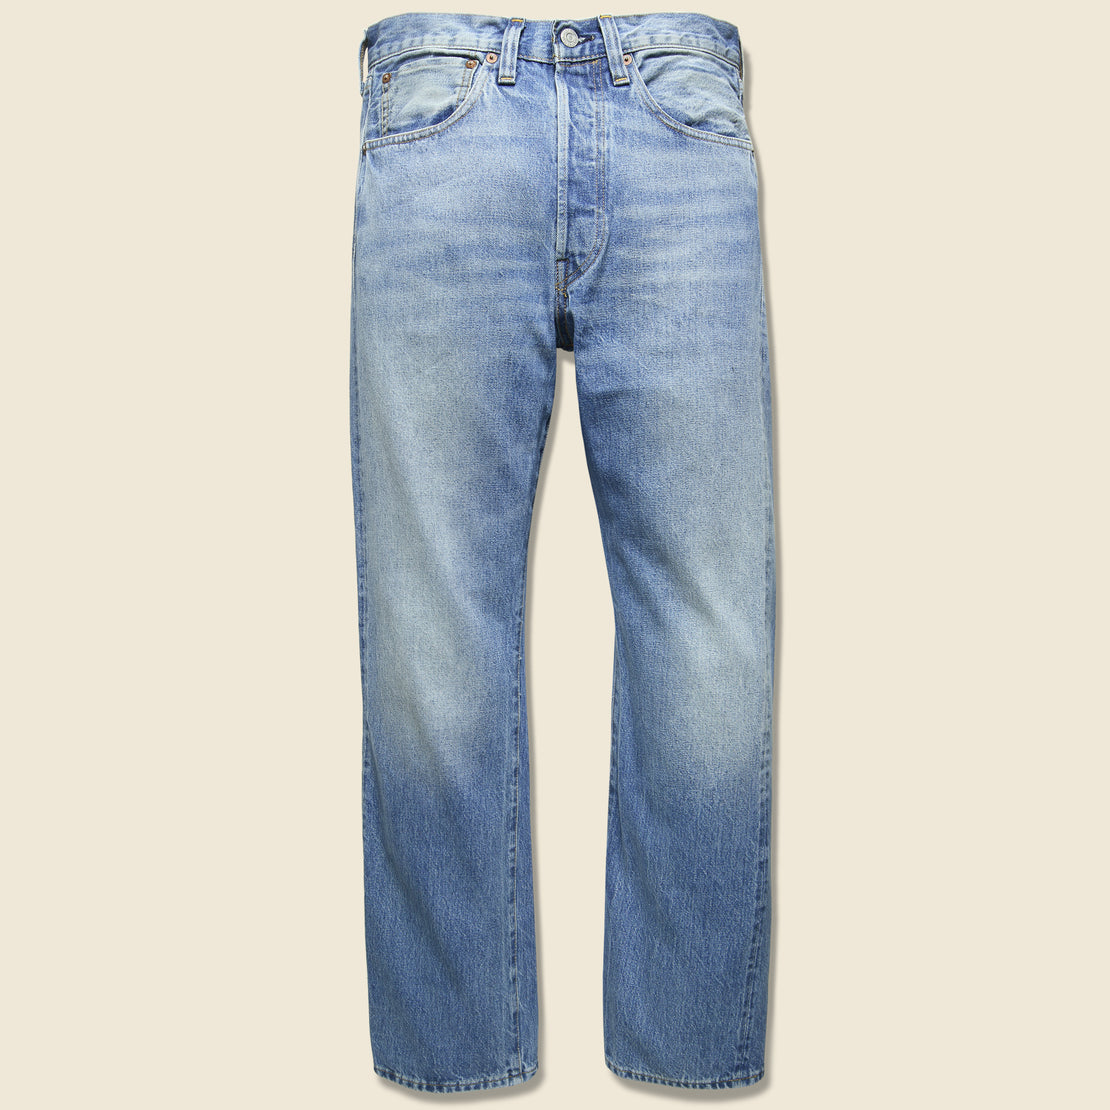 Levis Vintage Clothing 1947 501 Jean - Moon Rock